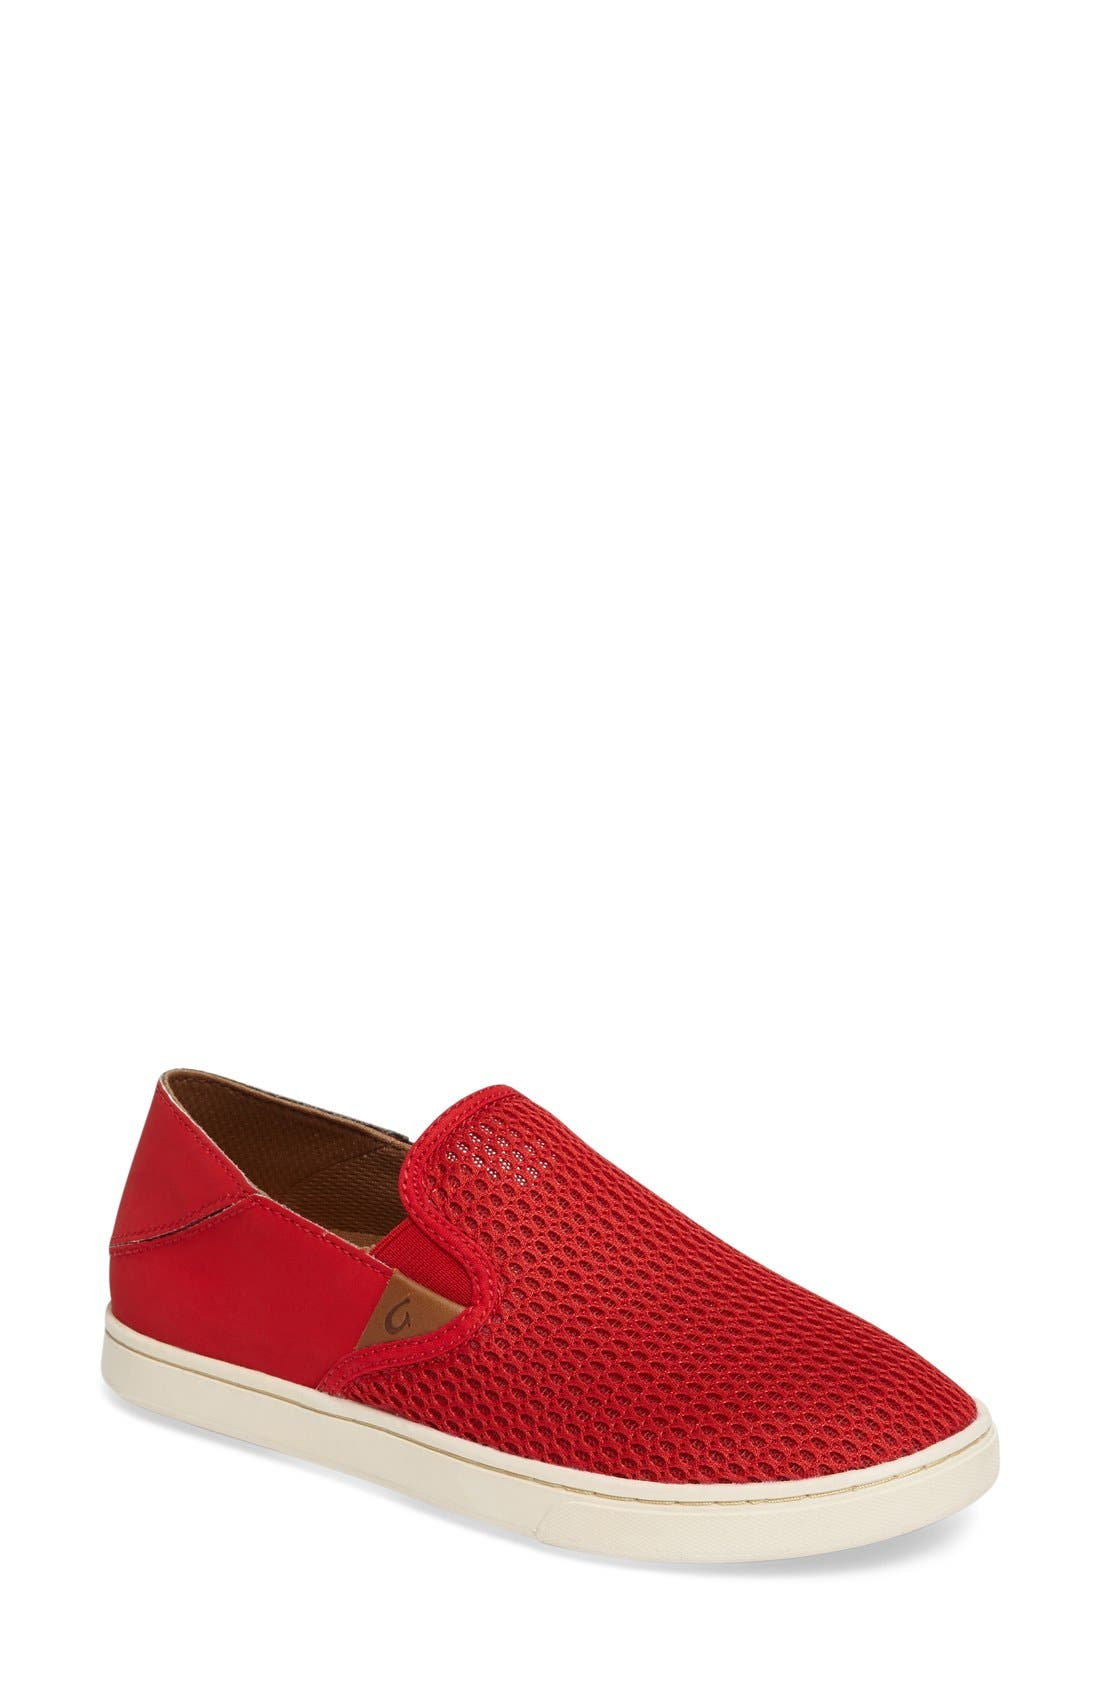 Alternate Image 1 Selected - OluKai 'Pehuea' Slip-On Sneaker (Women)